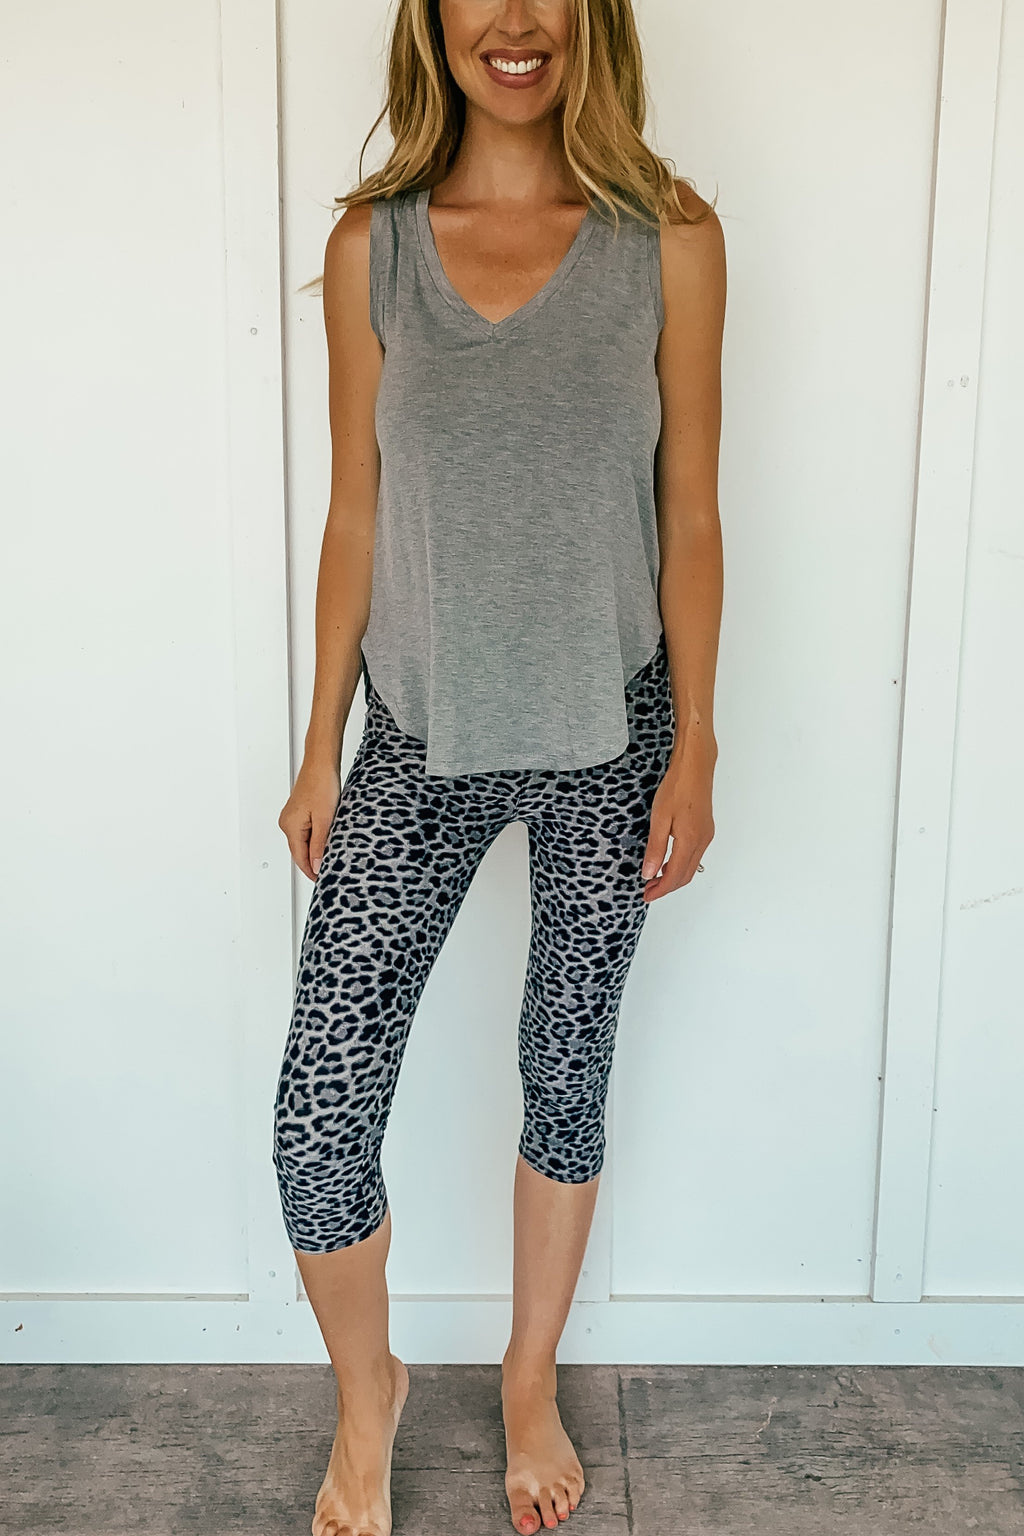 Gray and Black Leopard Capri Leggings - LURE Boutique